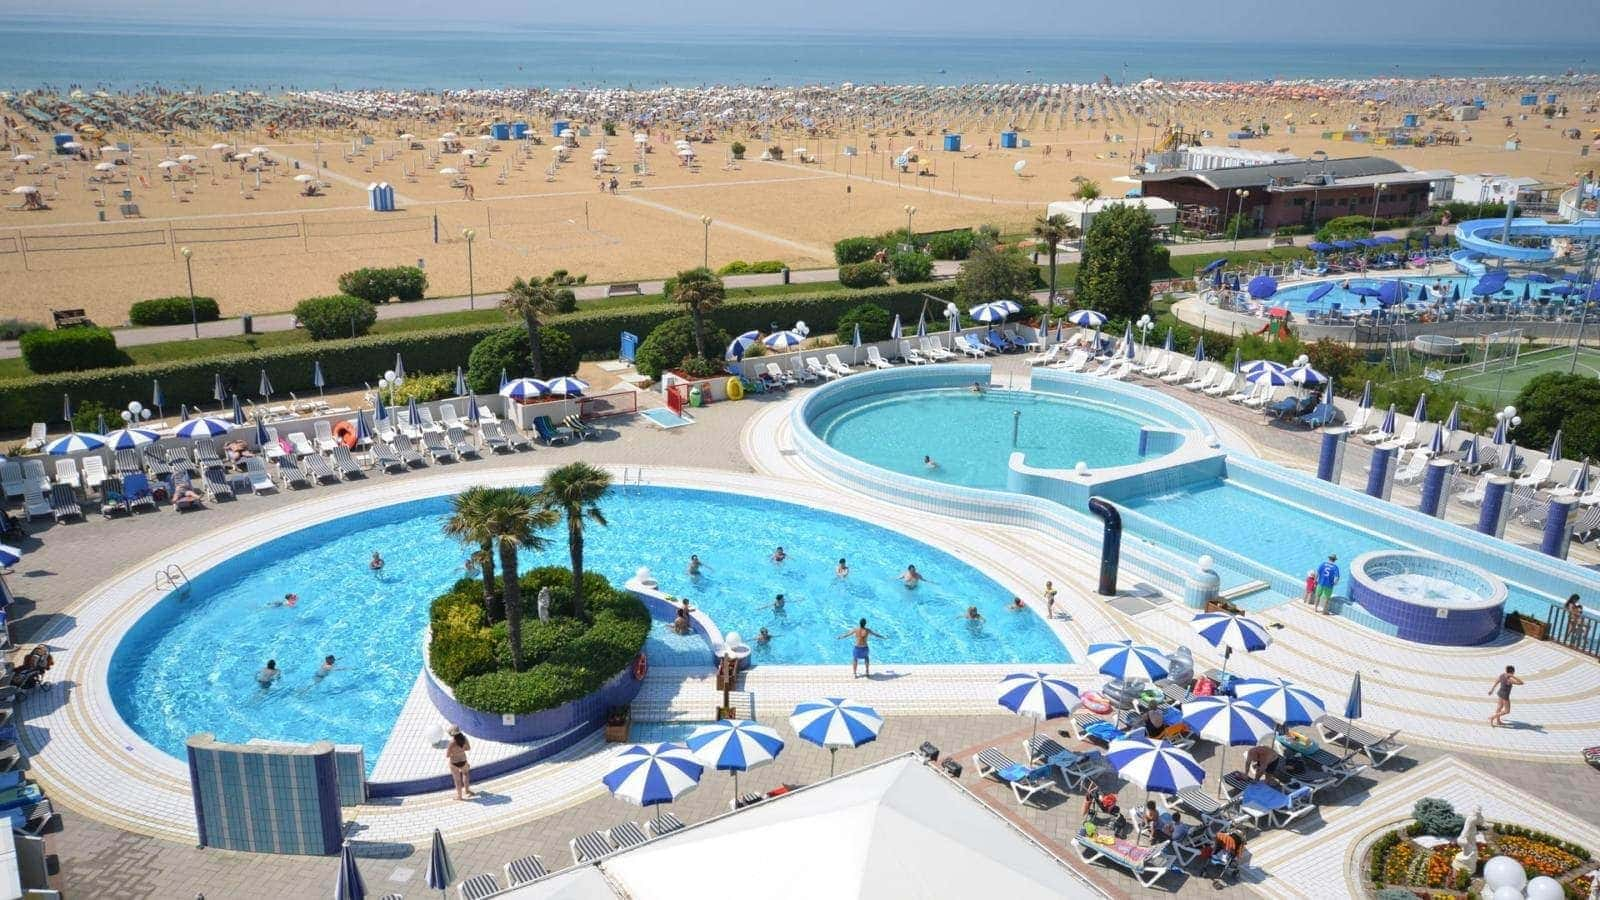 Beach Holiday with Kids – 5 Great things to do in Bibione, Italy